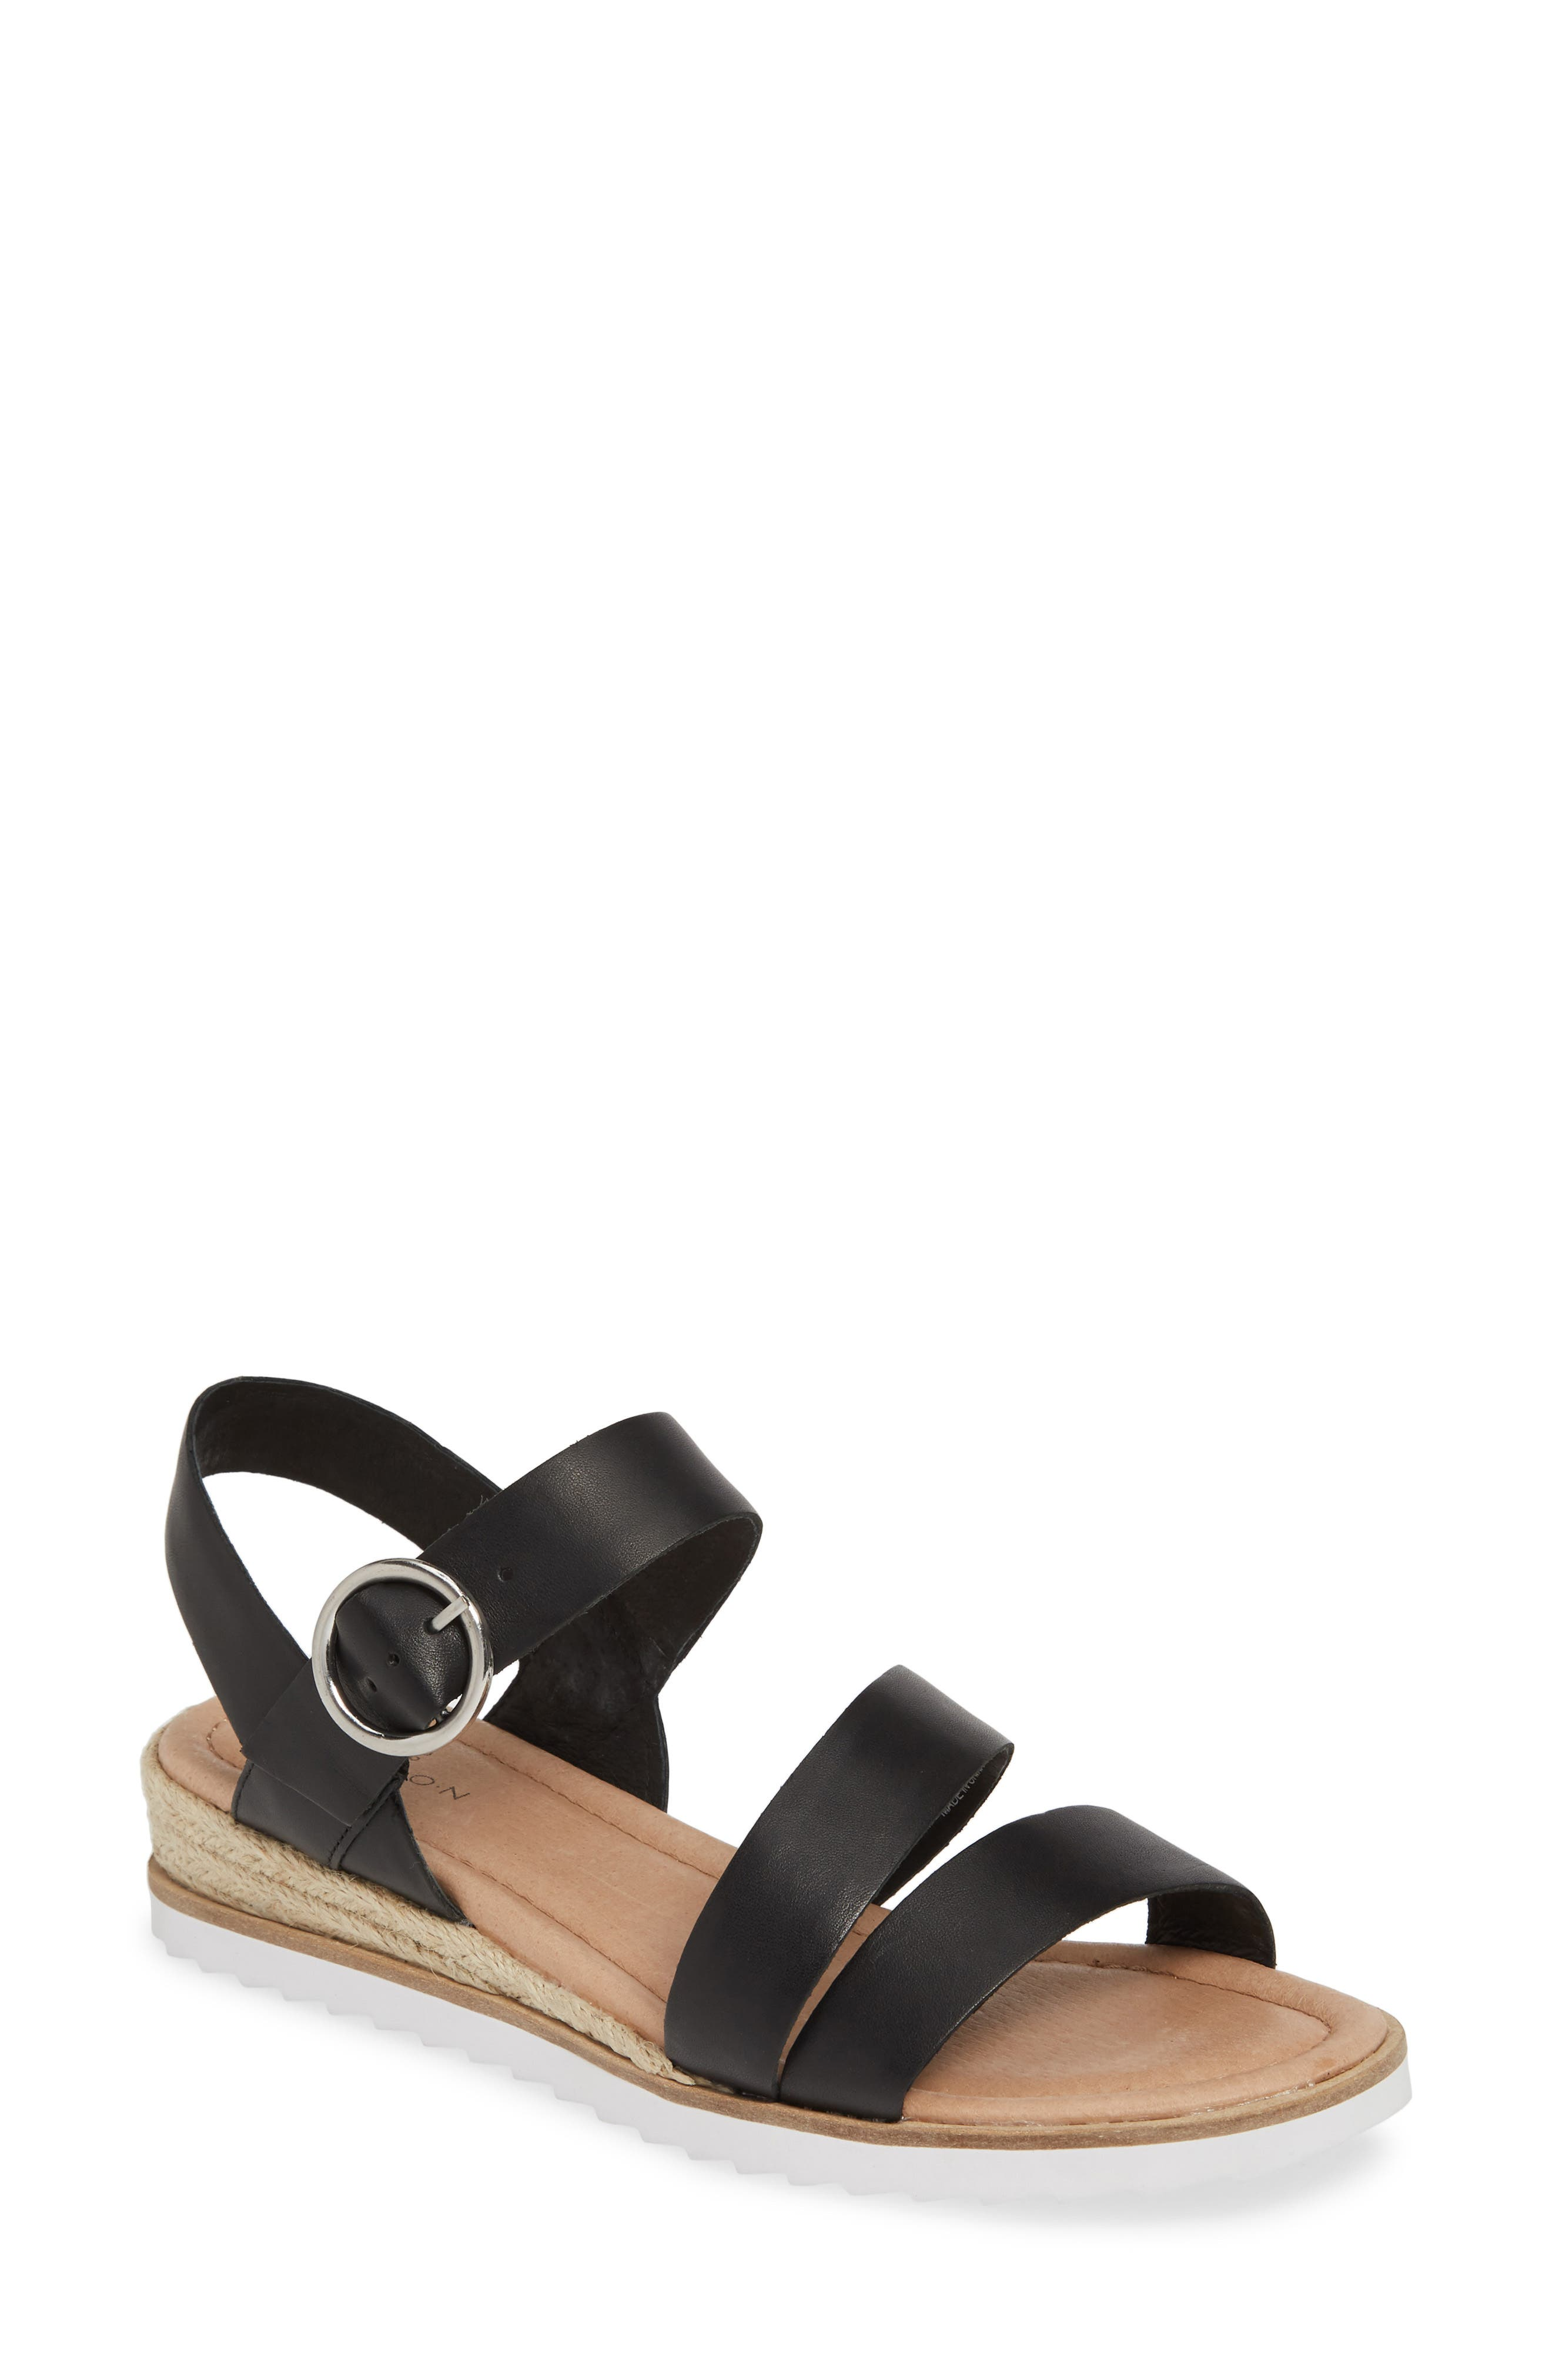 CASLON<SUP>®</SUP> Caslon Cameron Espadrille Wedge Sandal, Main, color, BLACK LEATHER